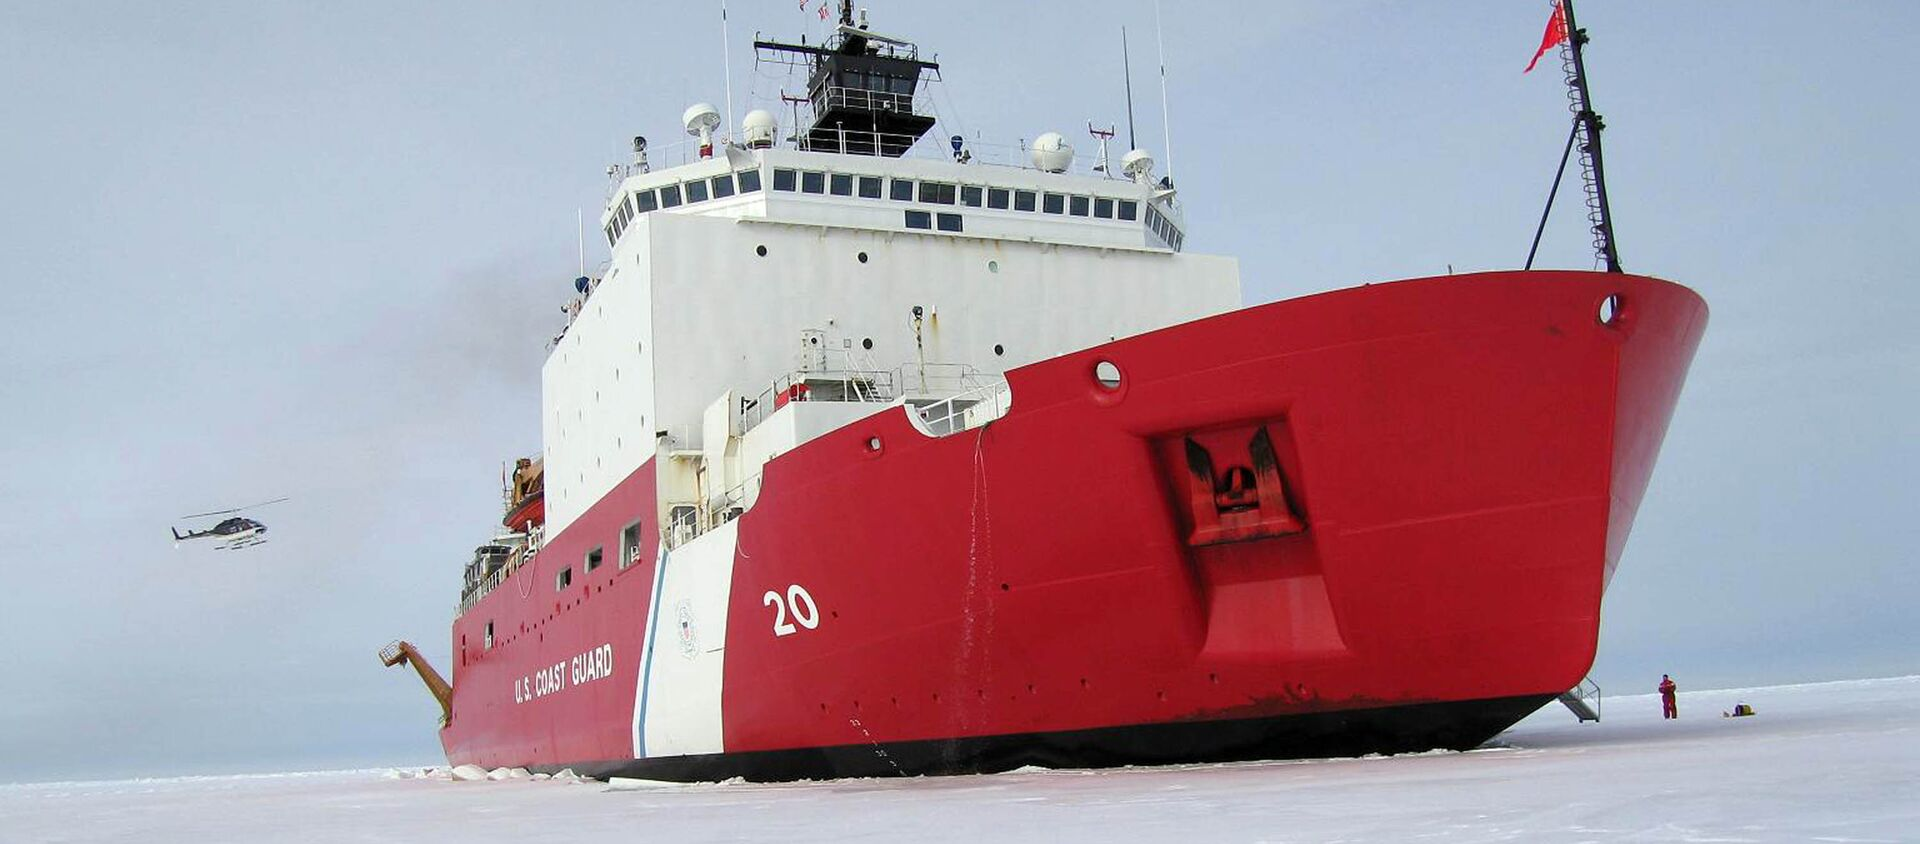 420-foot (128m) Coast Guard cutter Healy the largest and most technically advanced icebreaker in the US - Sputnik International, 1920, 29.06.2021